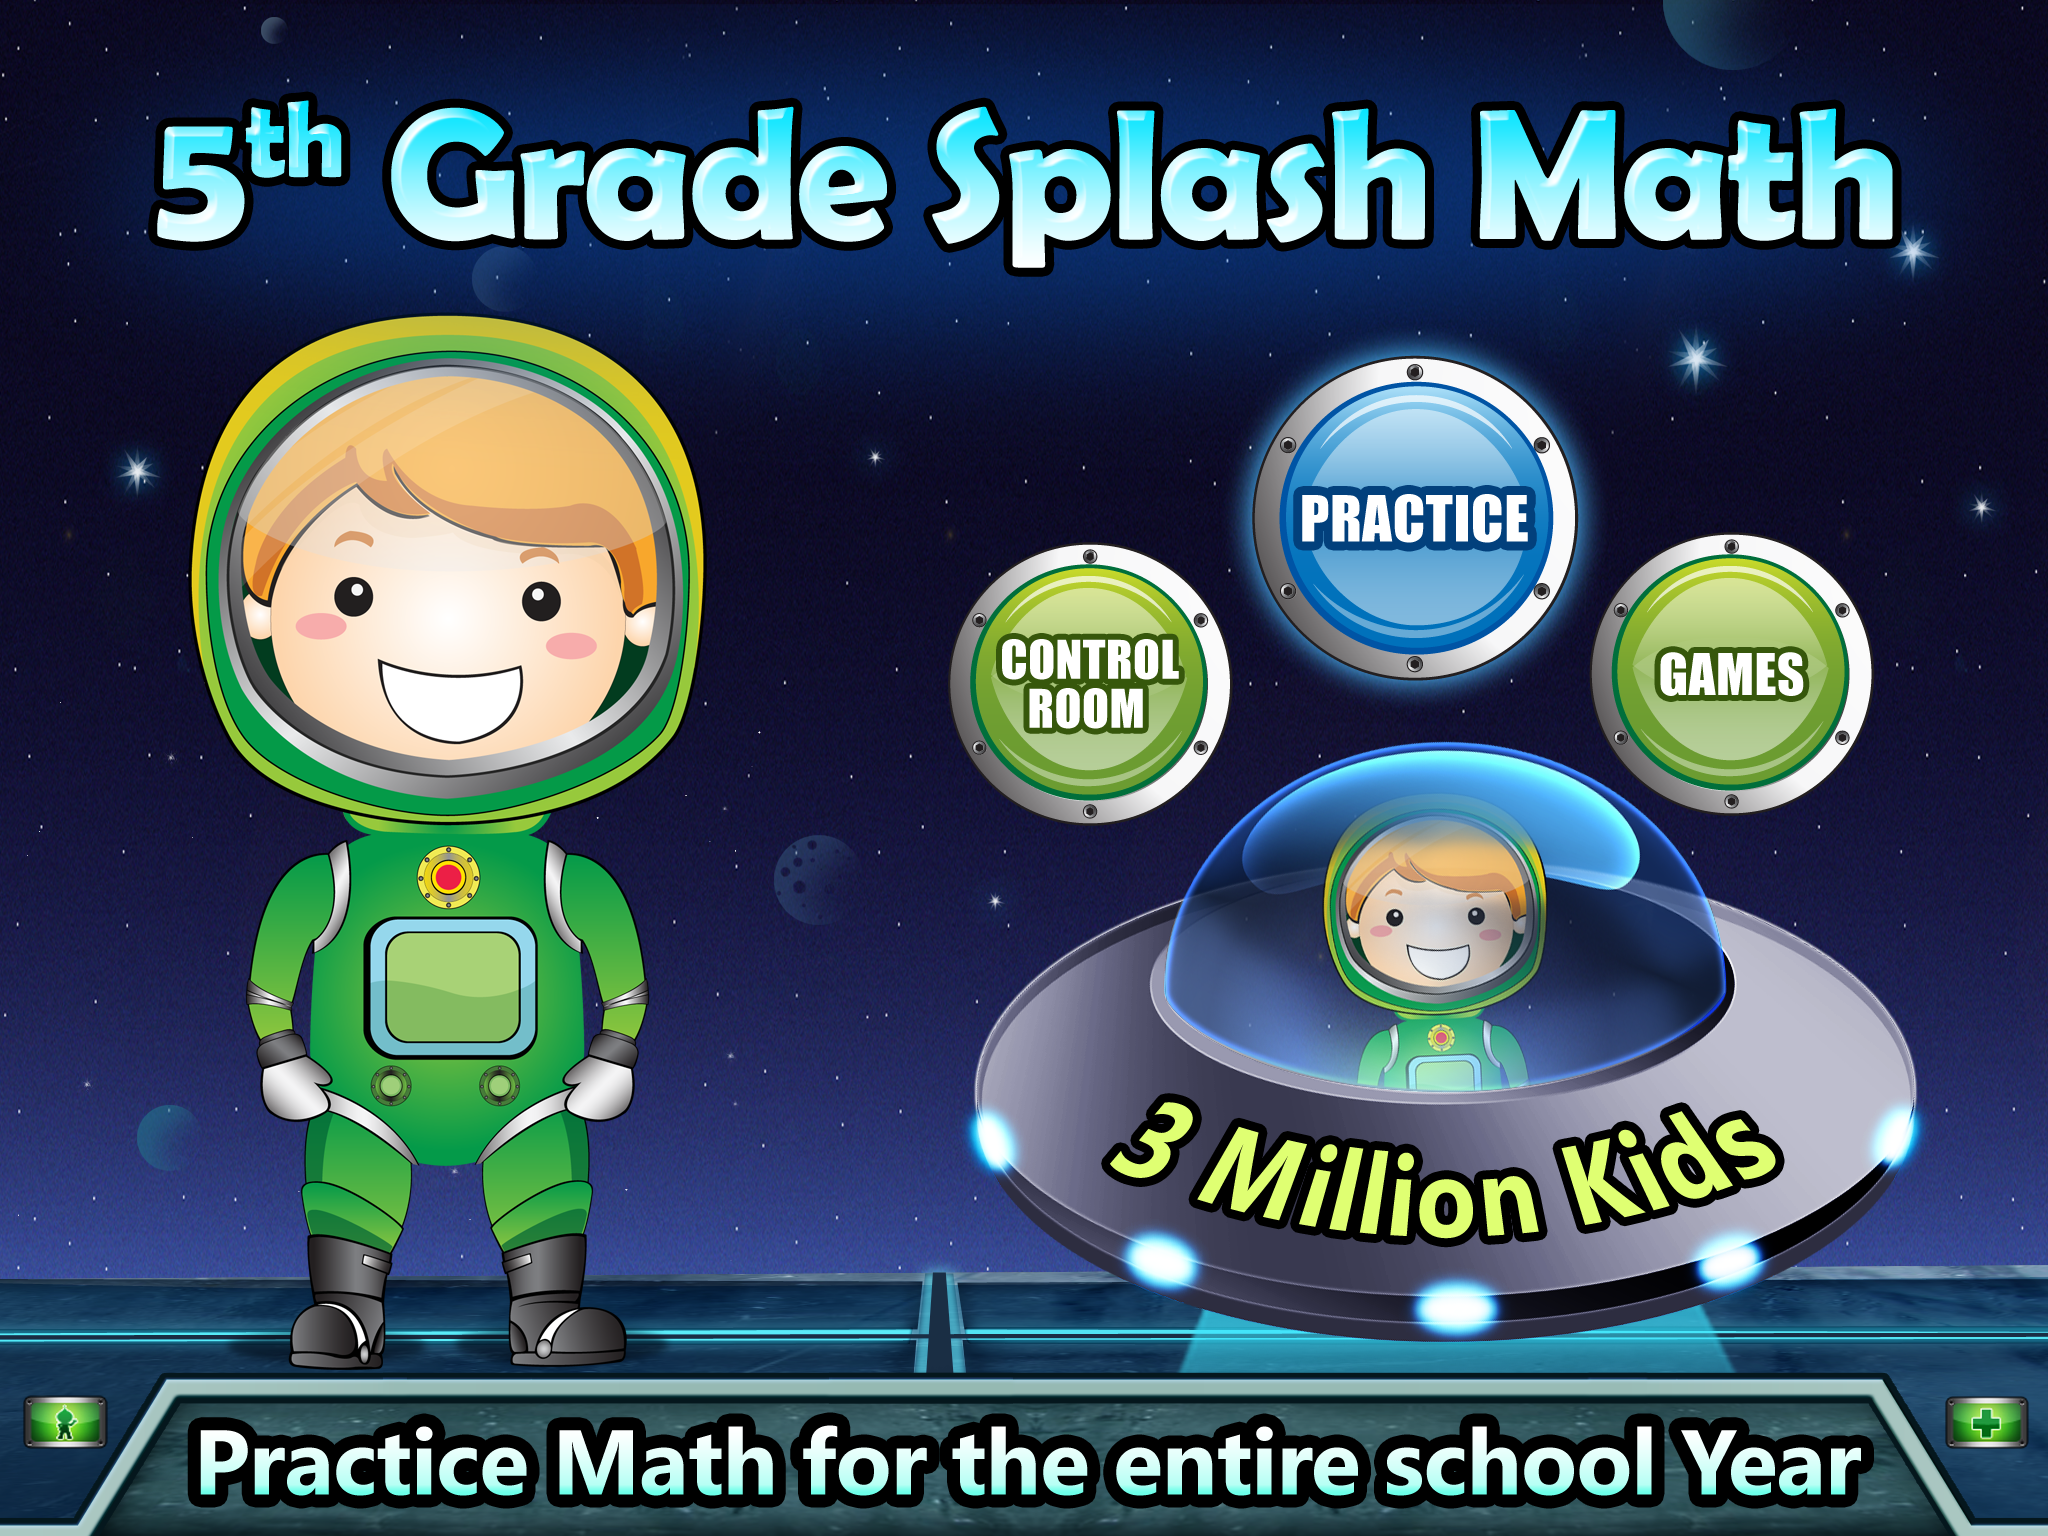 Splash Math Is A Fun And Innovative Way To Practice Math